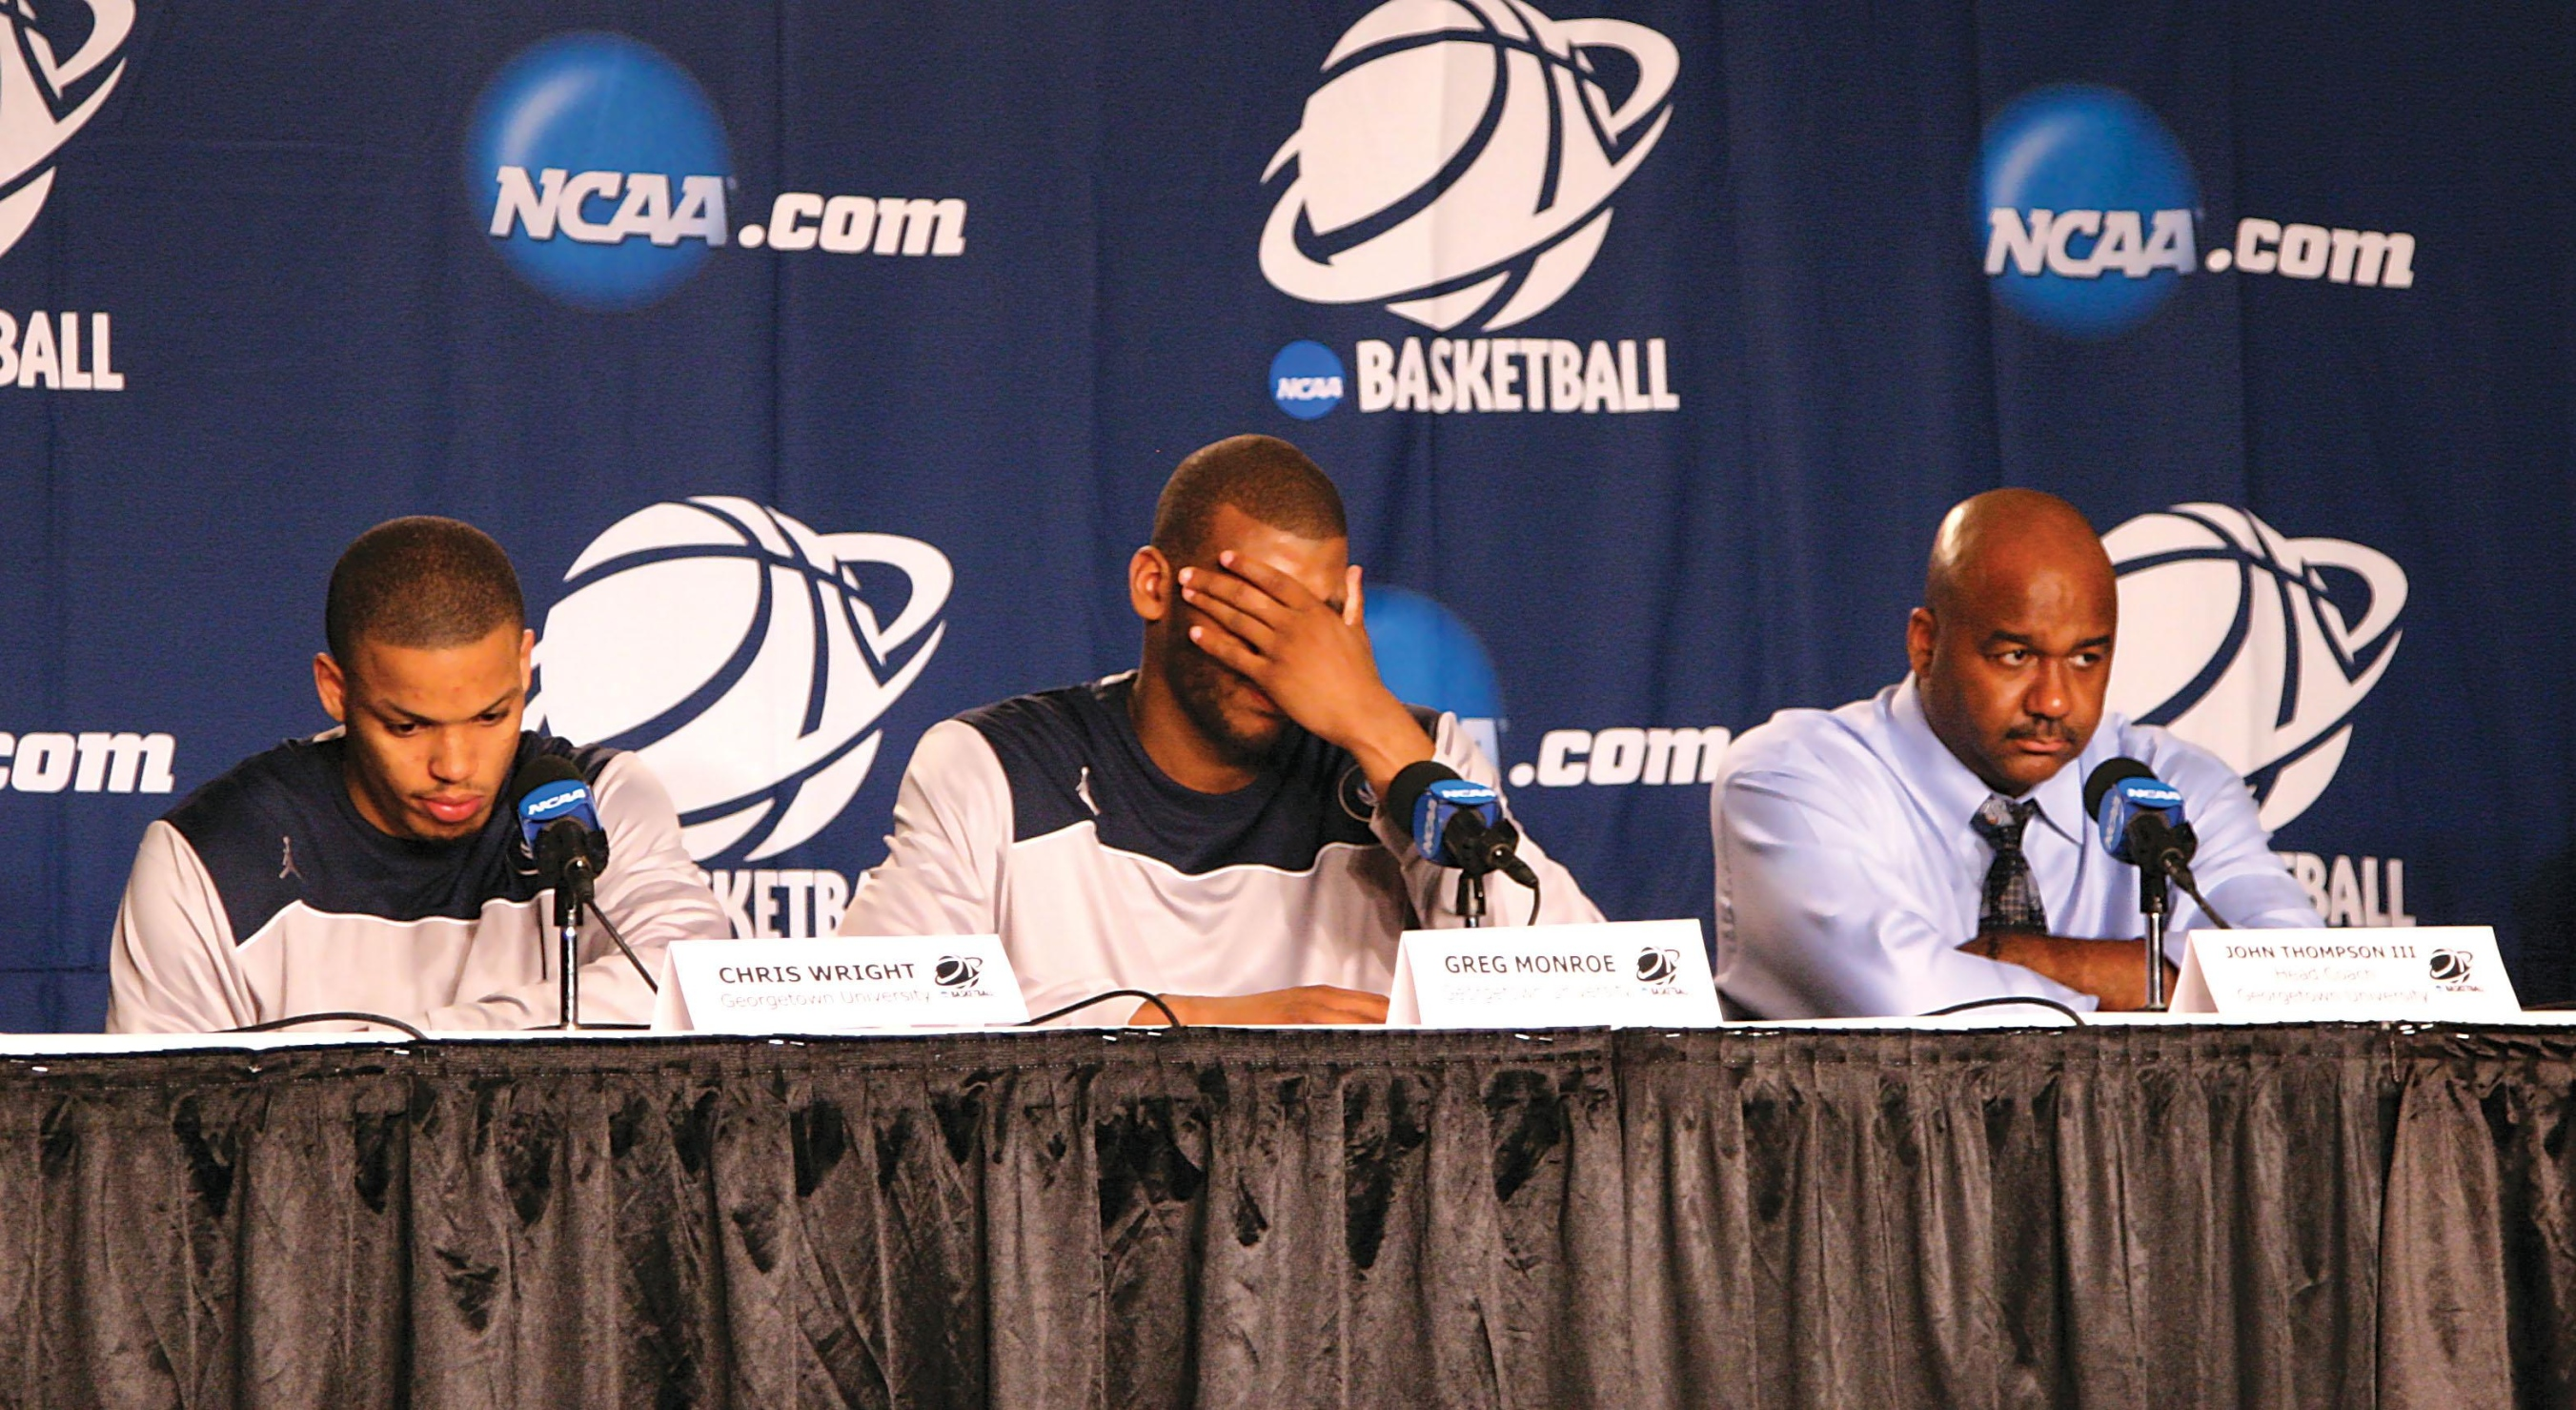 Chris Wright, Greg Monroe and Head Coach John Thompson III look dejected at the postgame press conference after the third-seeded Hoyas' 97-83 loss to 14th-seeded Ohio in the first round of the NCAA tournament.